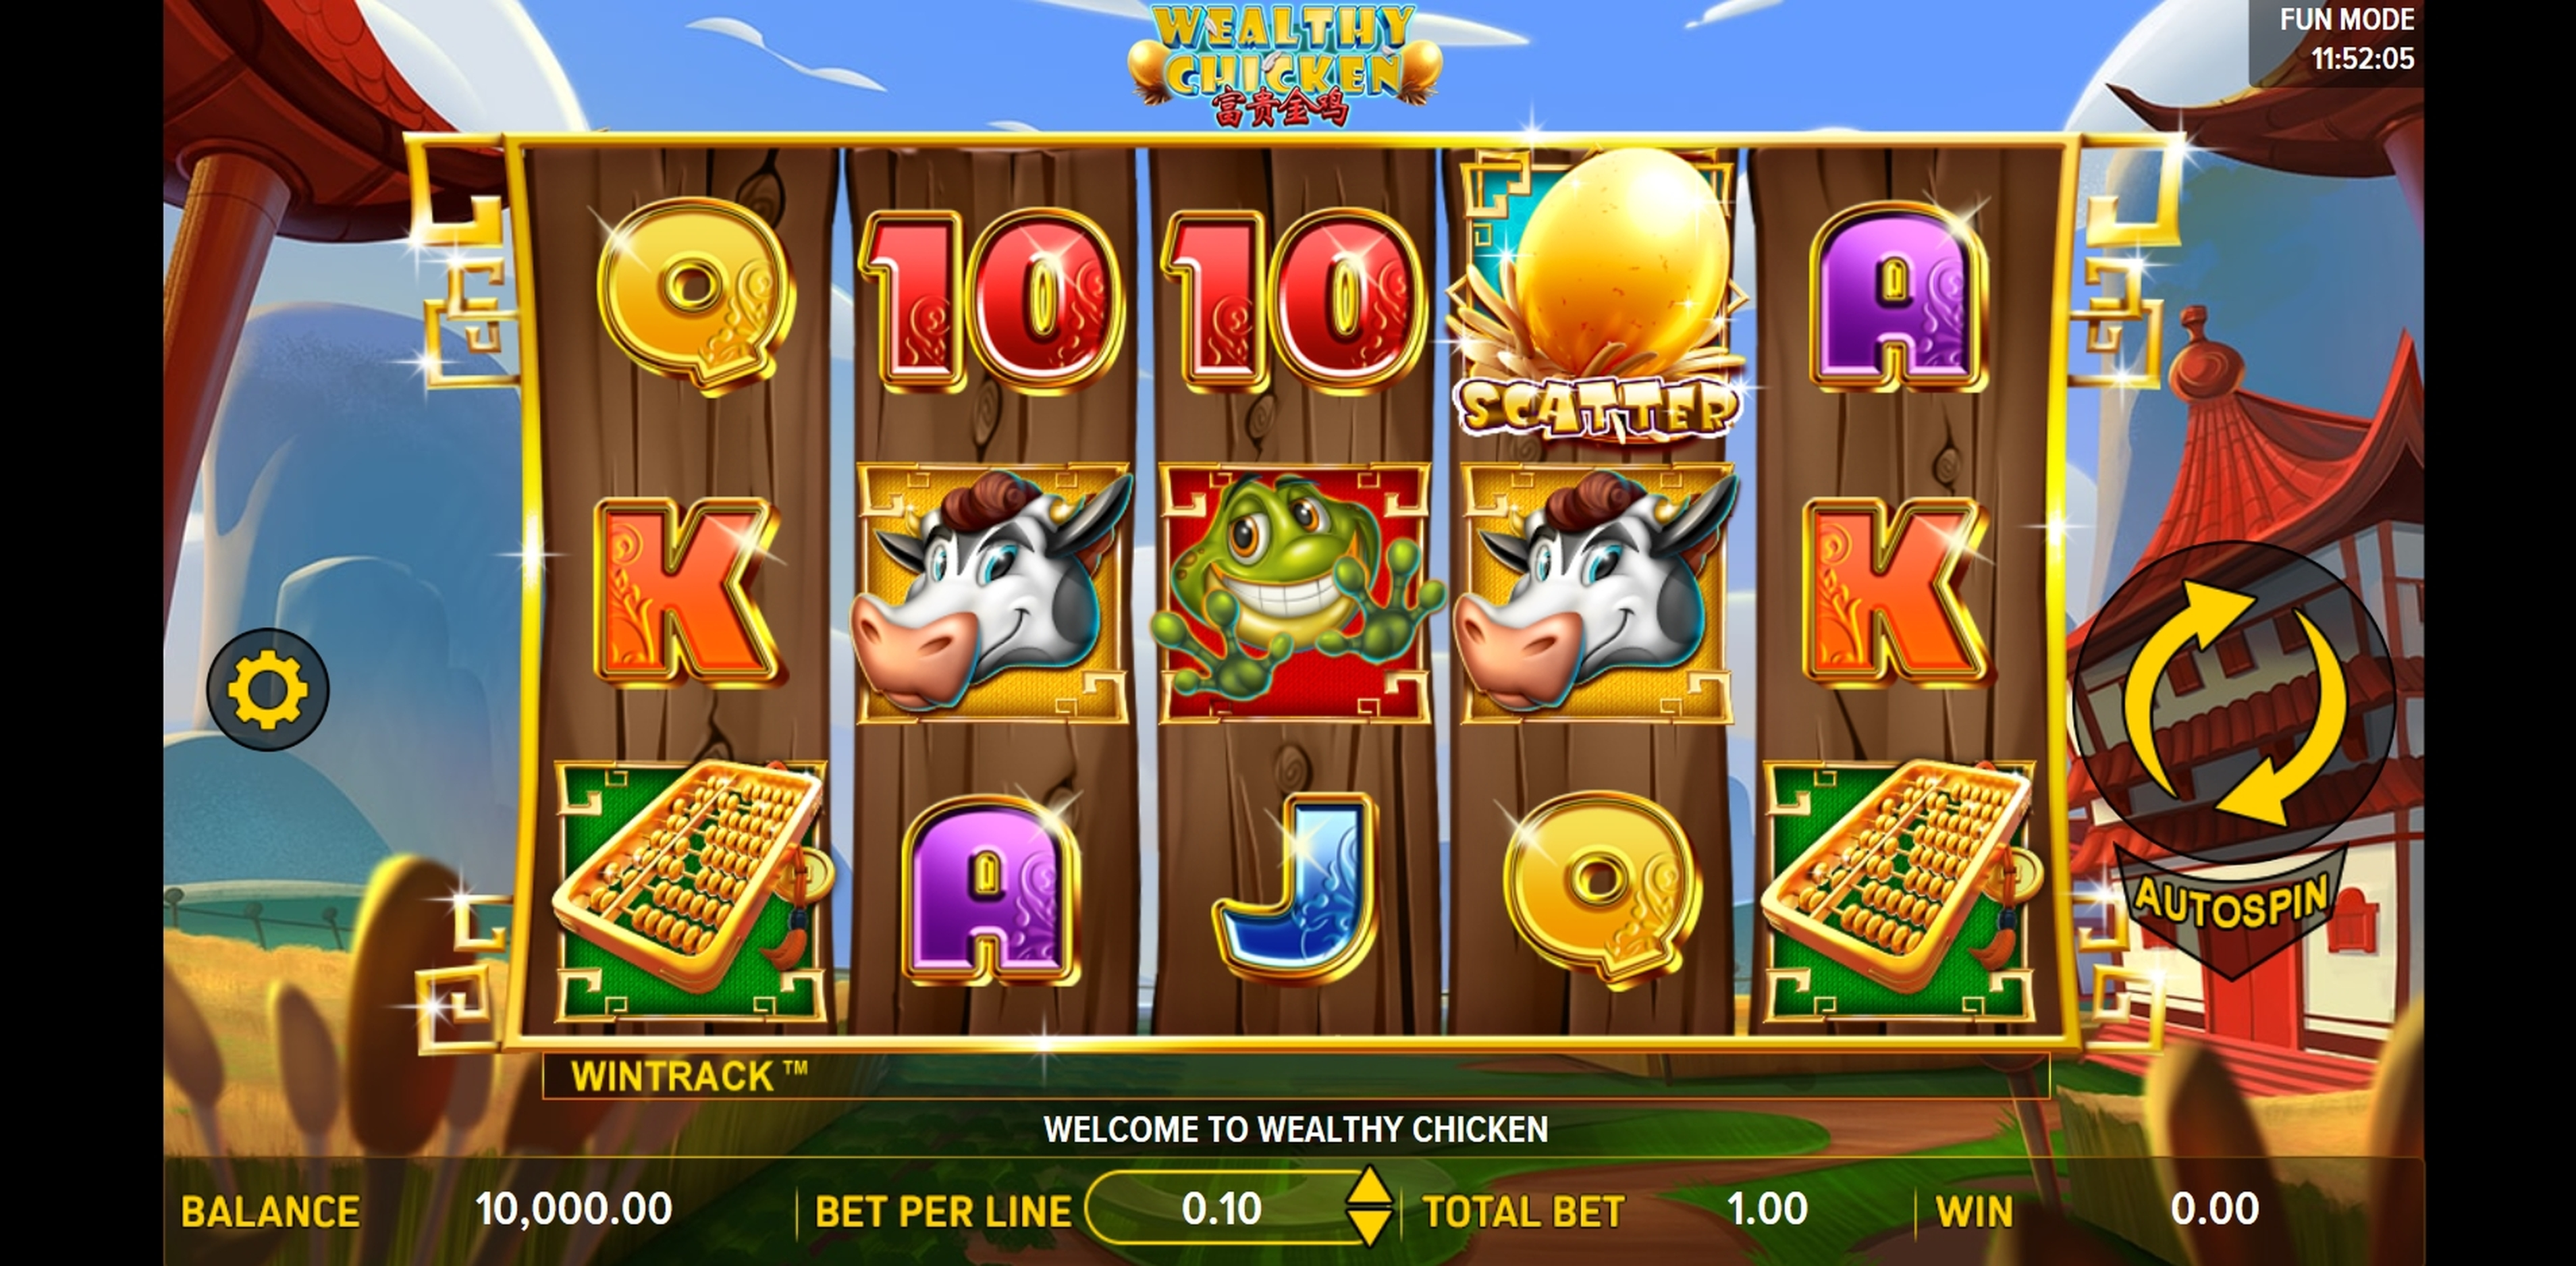 Reels in Wealthy Chicken Slot Game by Aspect Gaming